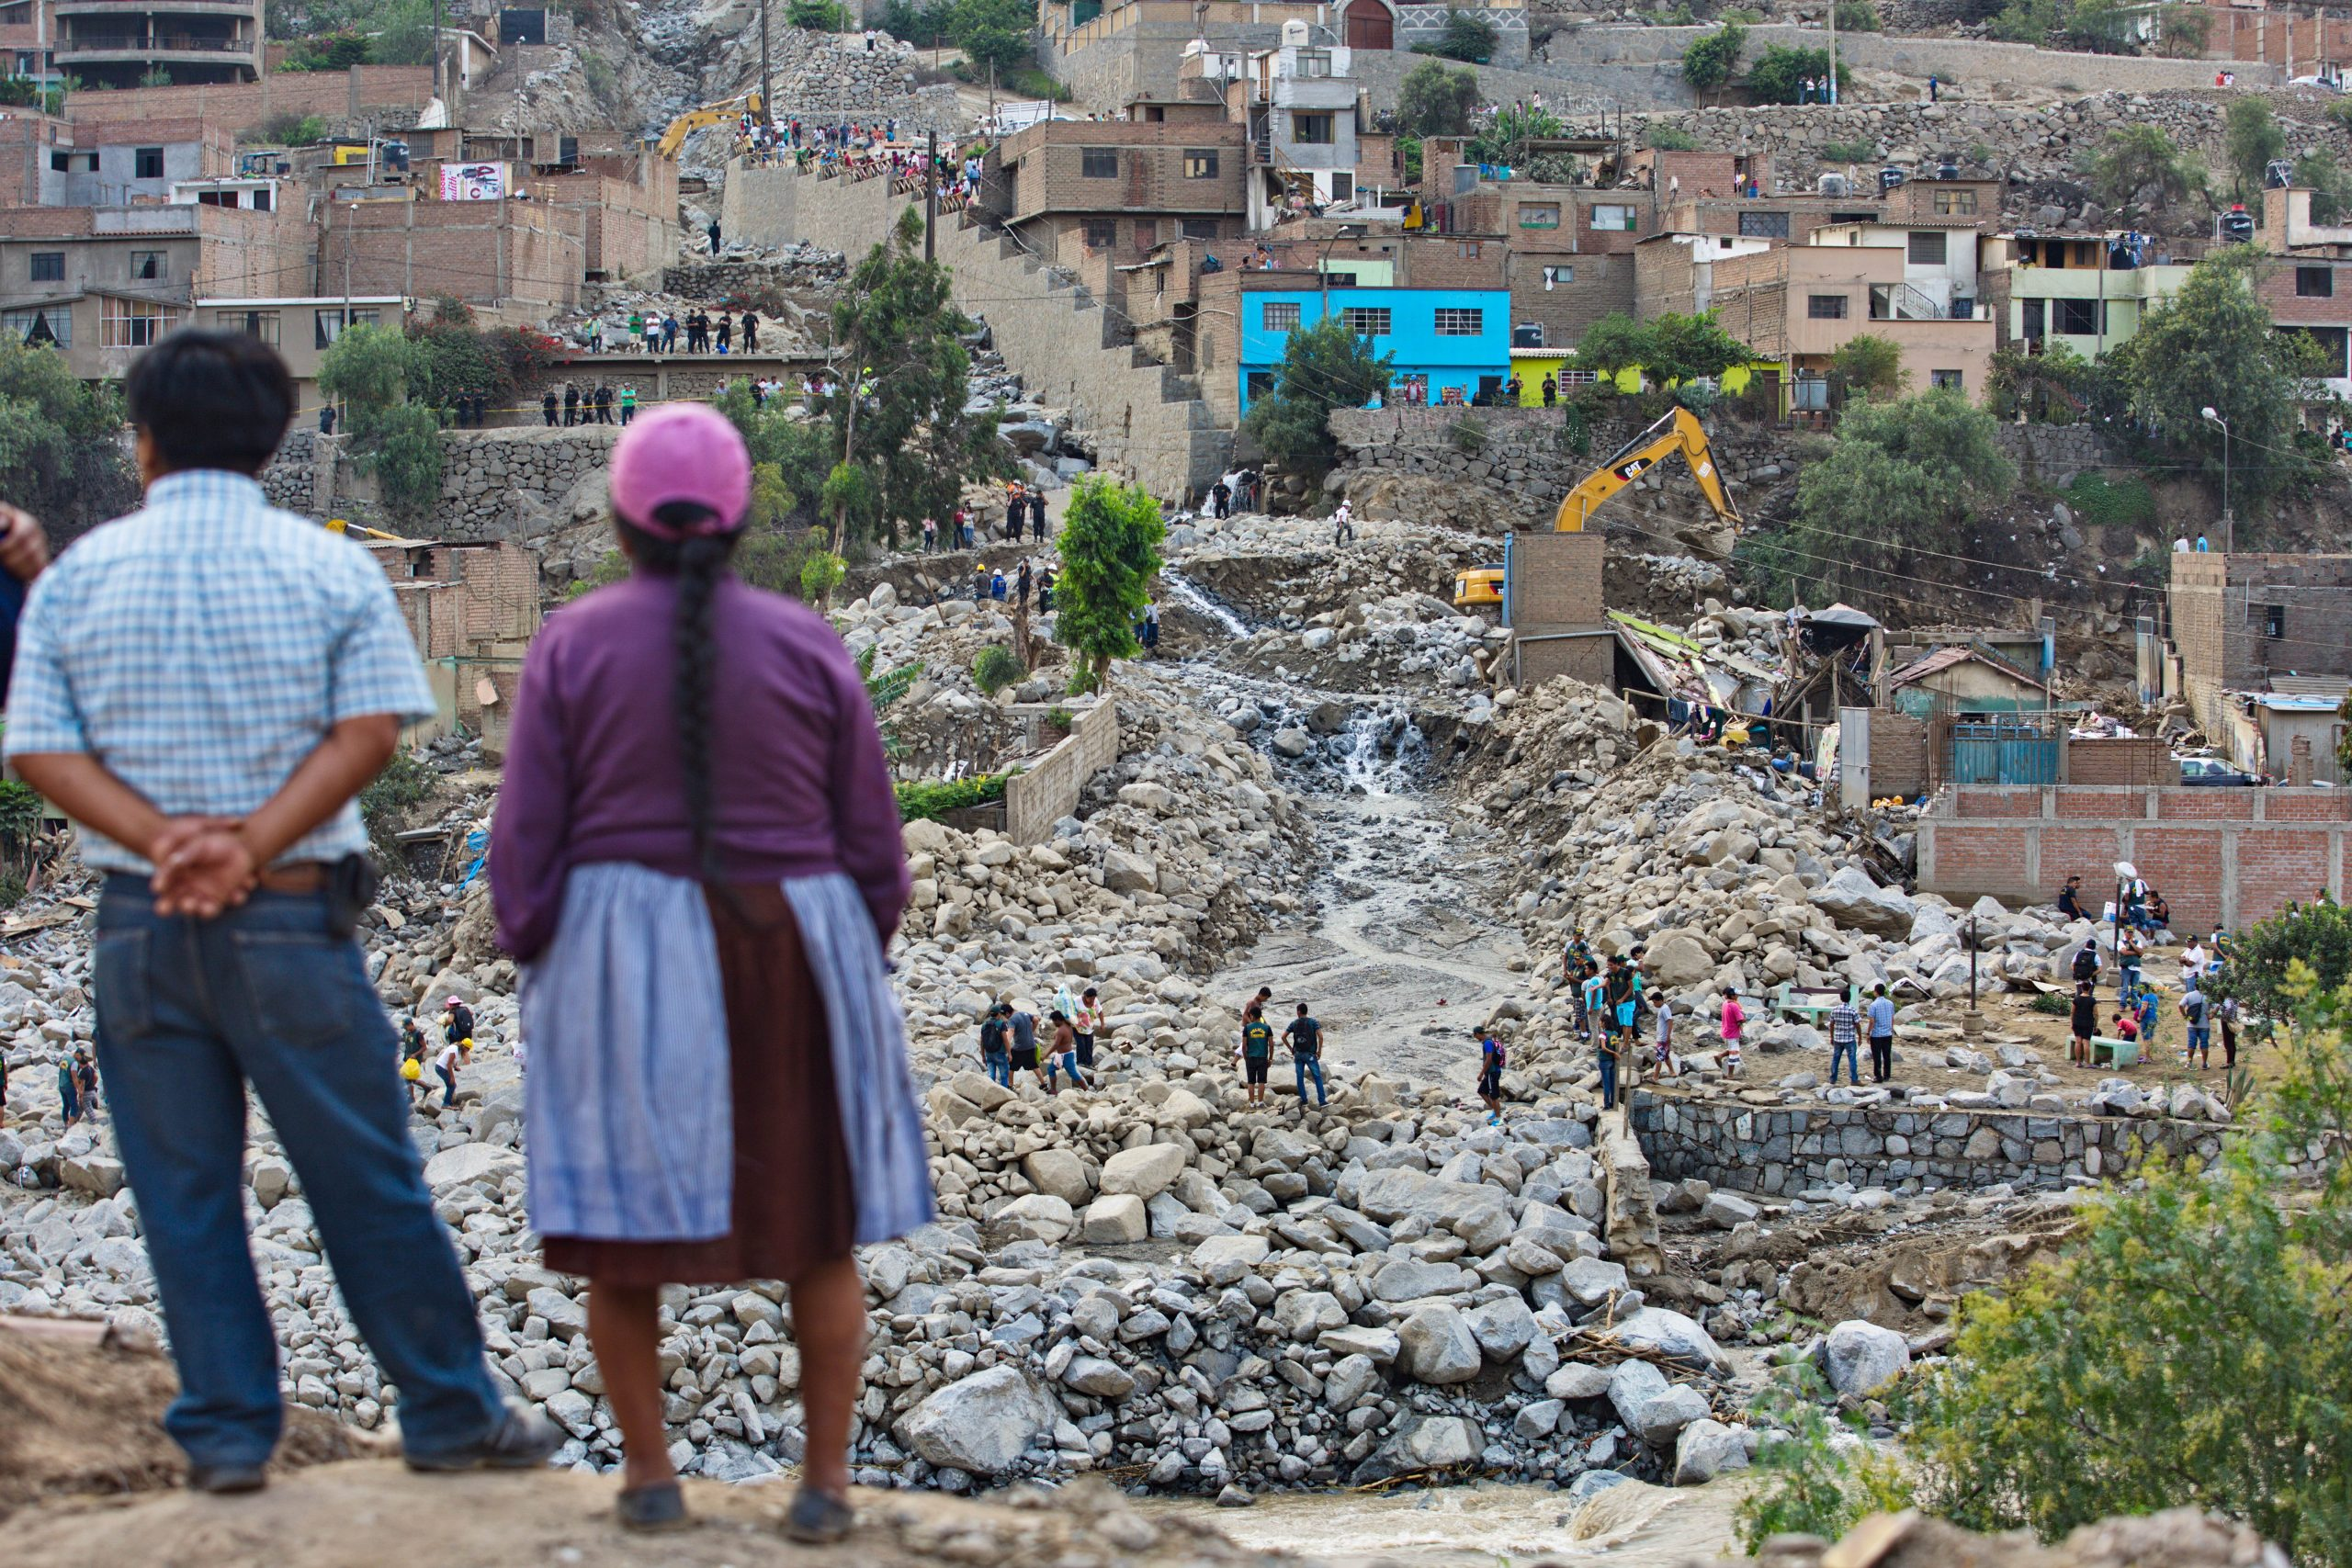 The aftermath of a flash flood in a community outside Lima, Peru. By Fidel Carillo